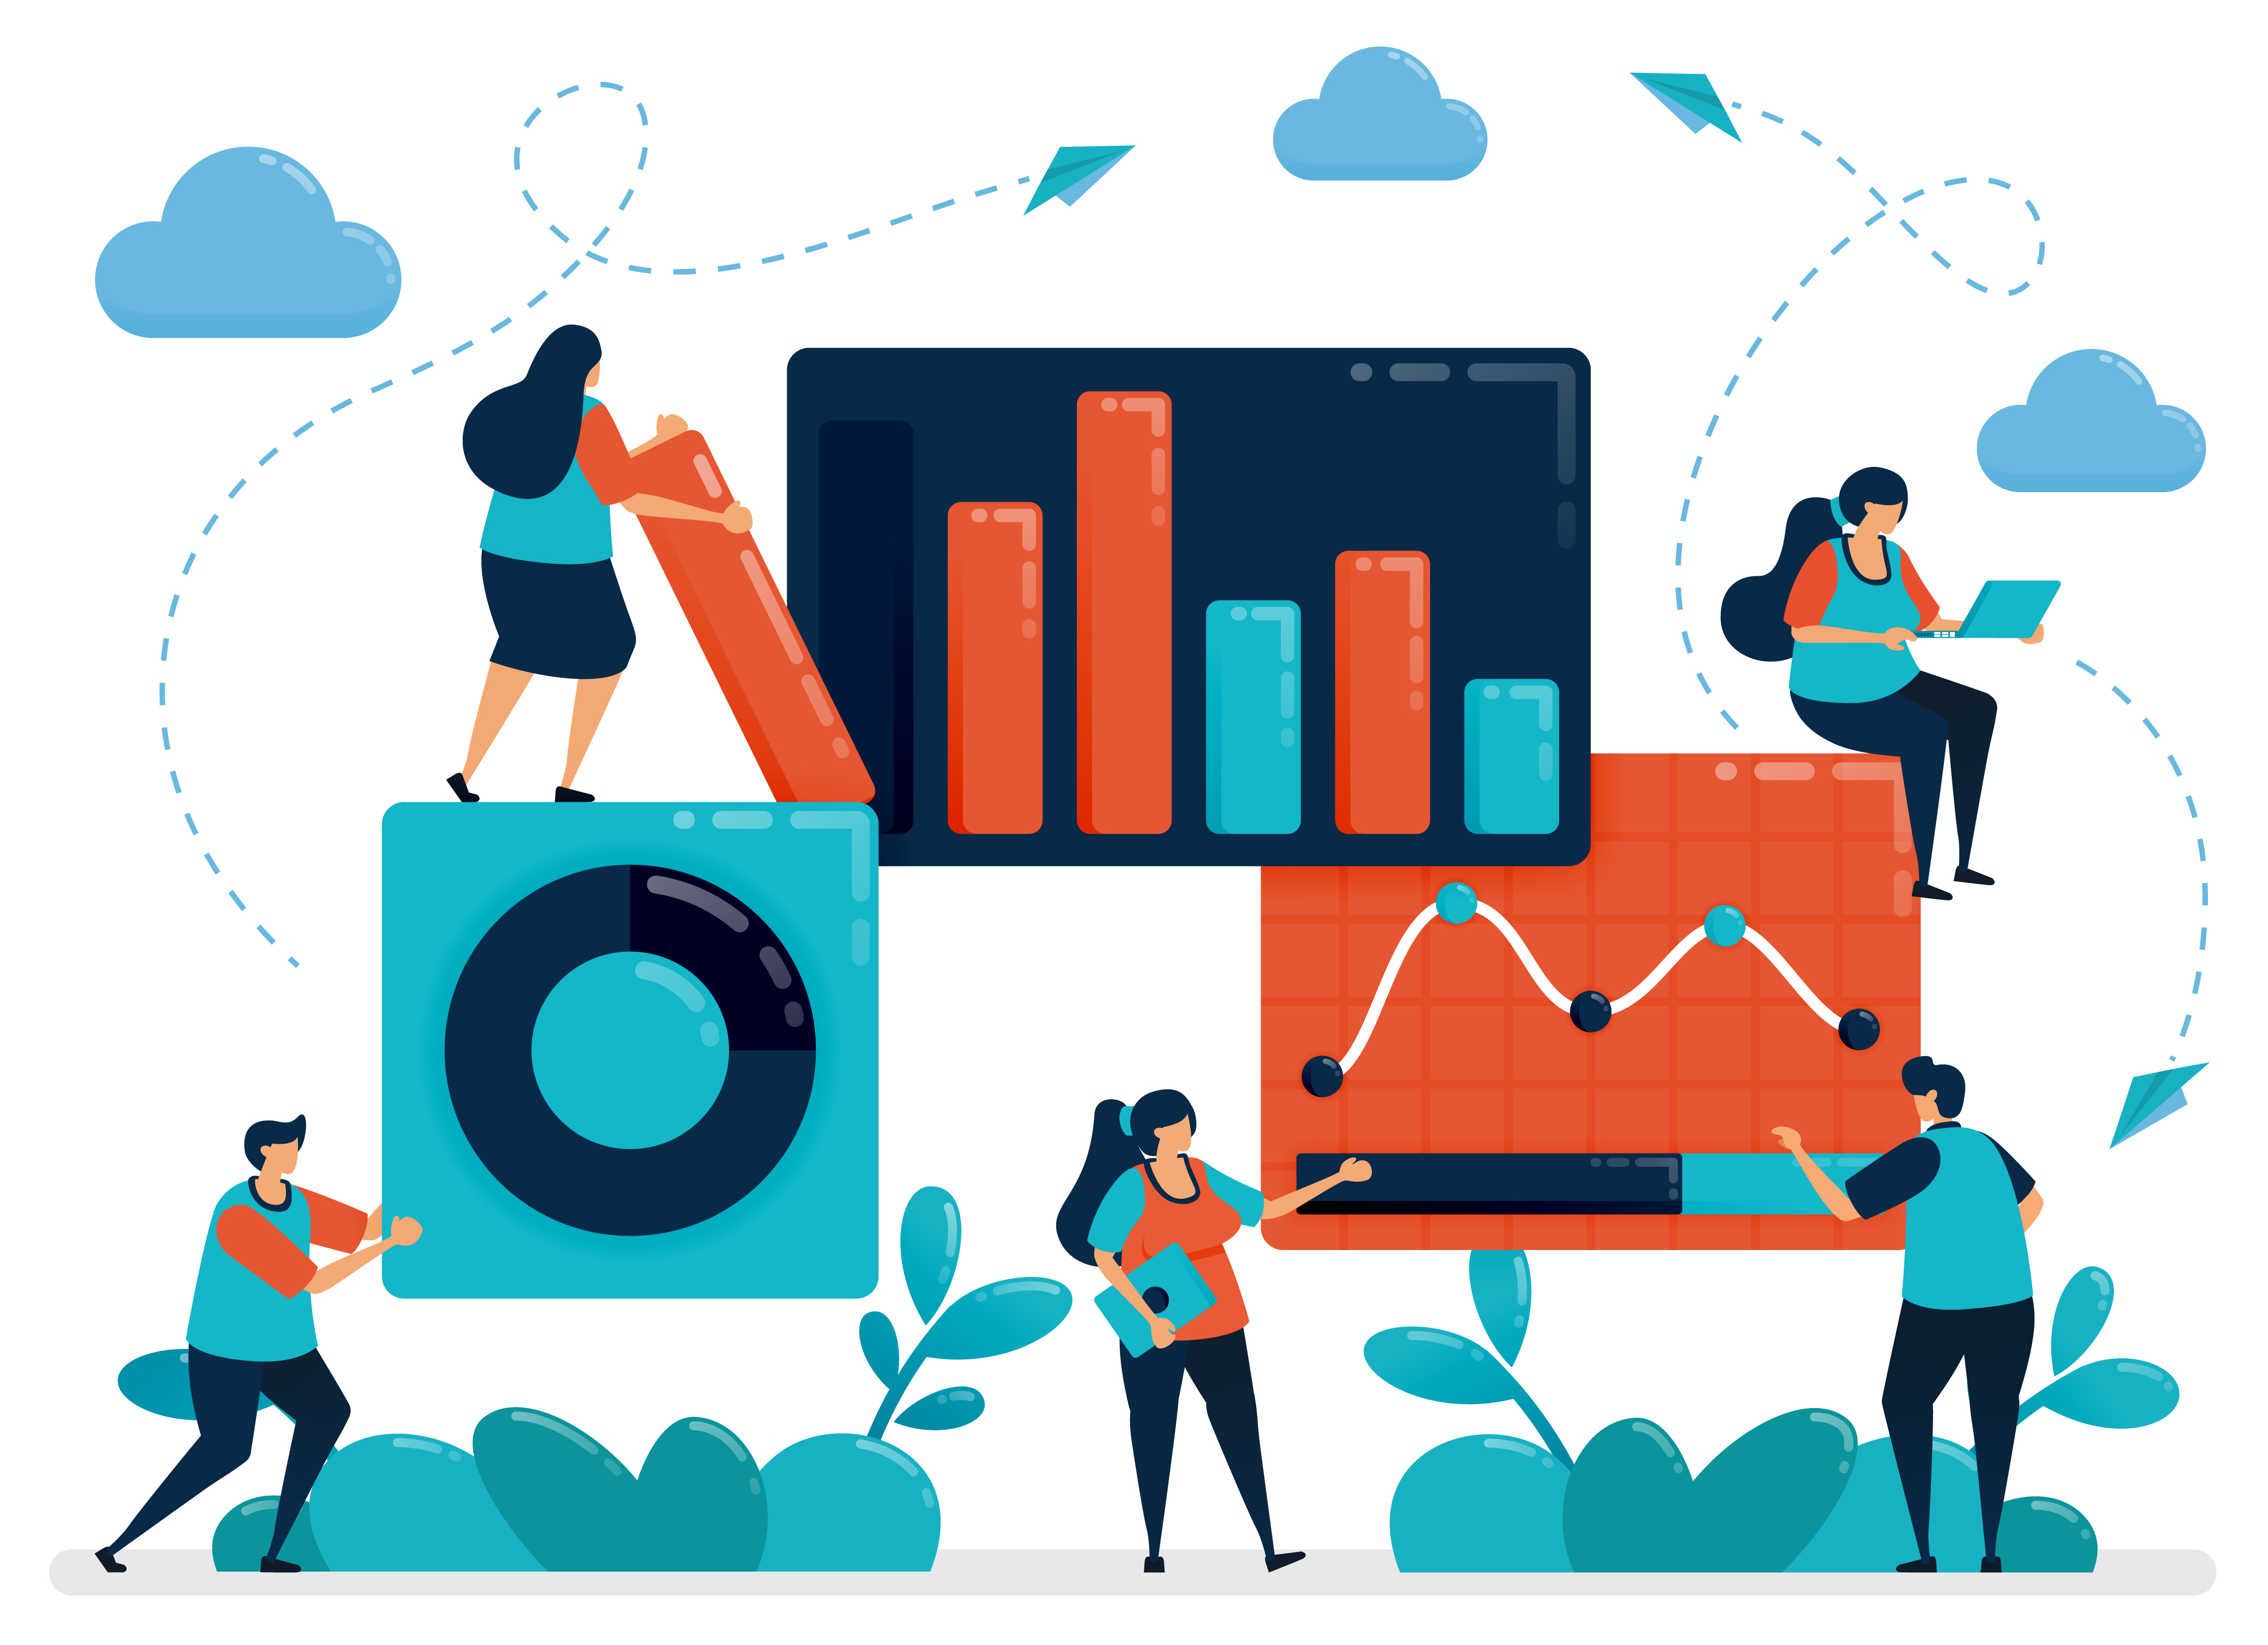 market statistical analysis. business chart data. work with statistics  data. economic and business growth. planning startup company. vector  illustration, graphic design, card, banner, brochure, flyer 1879496 vector  art at vecteezy  vecteezy